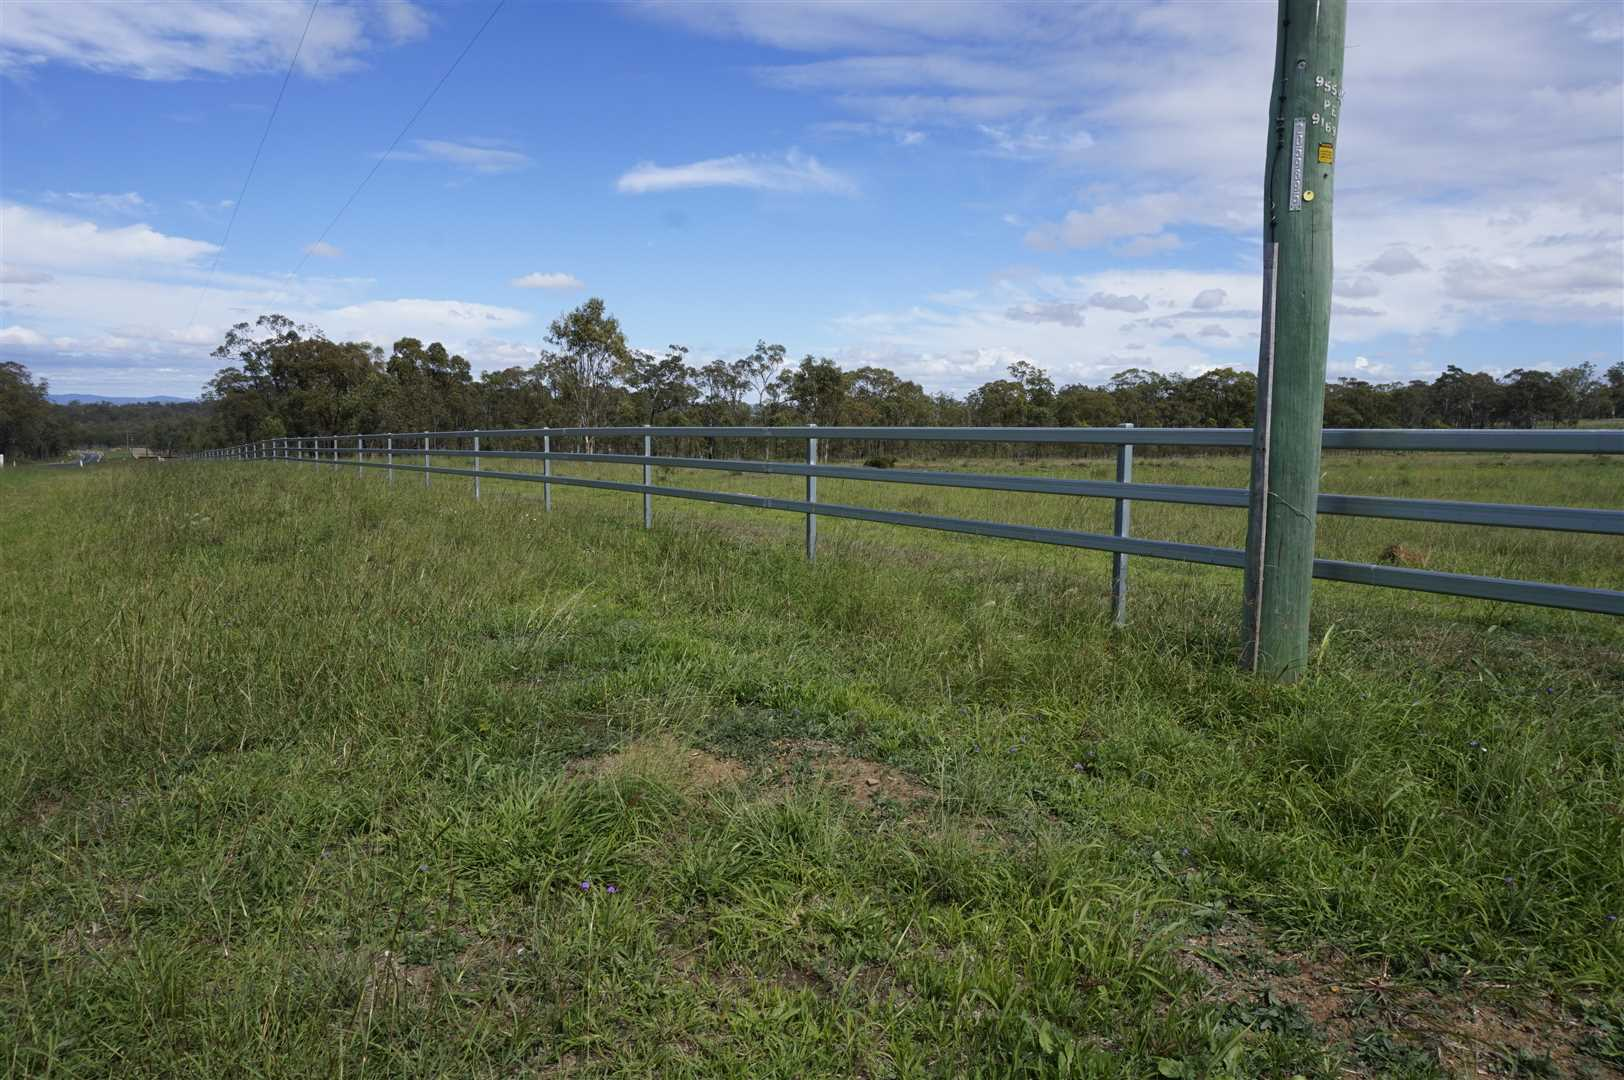 Road Frontage Fence